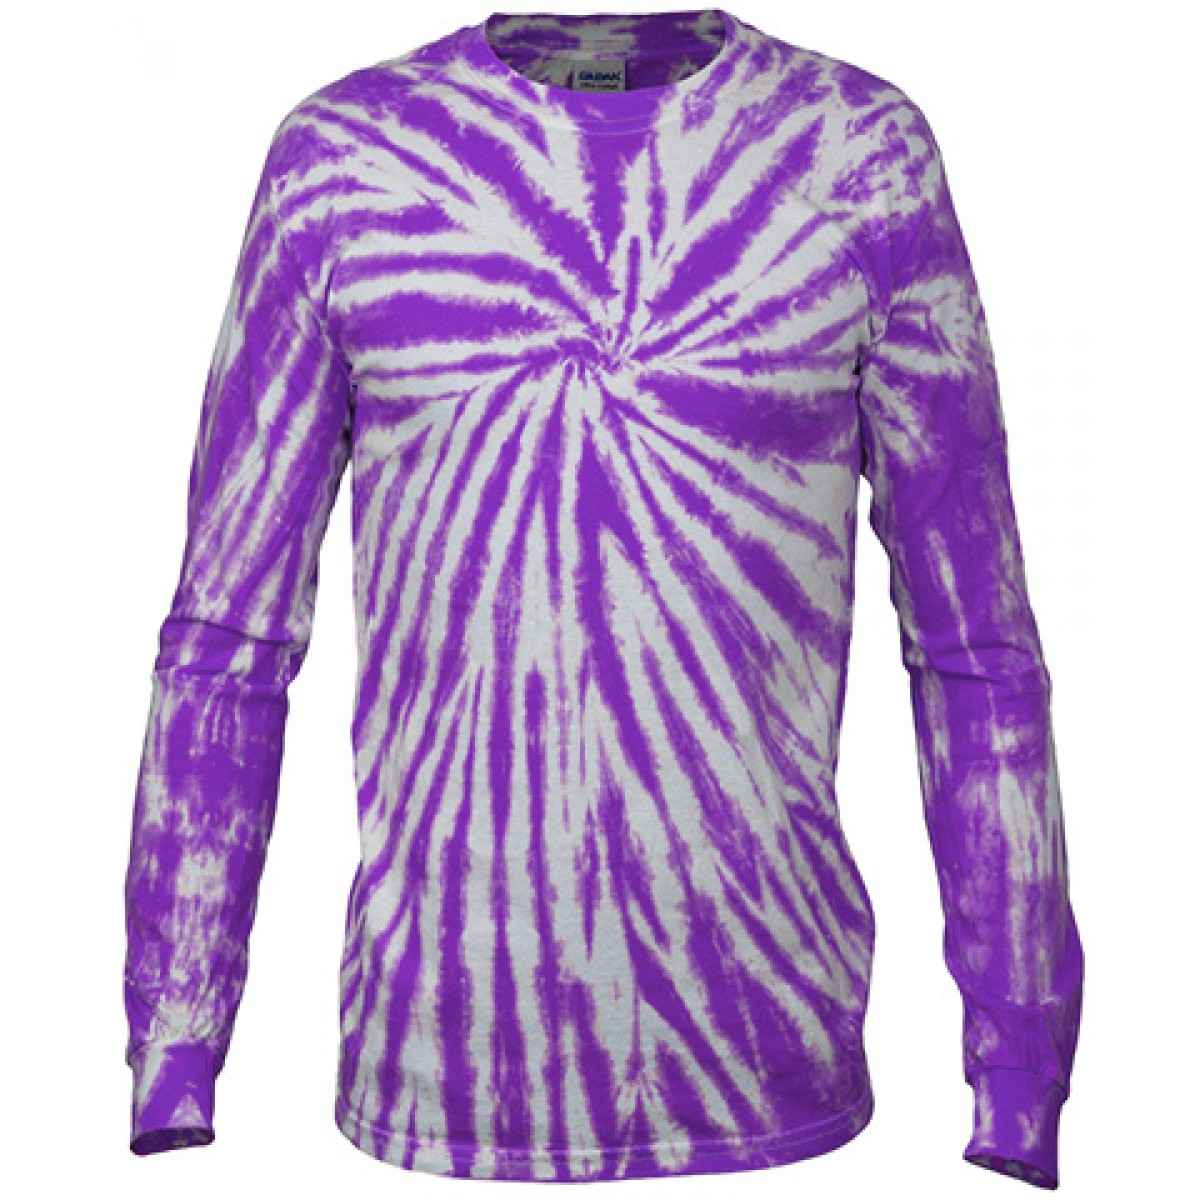 Multi Color Tie-Dye Long Sleeve Shirt -Fuscia-2XL